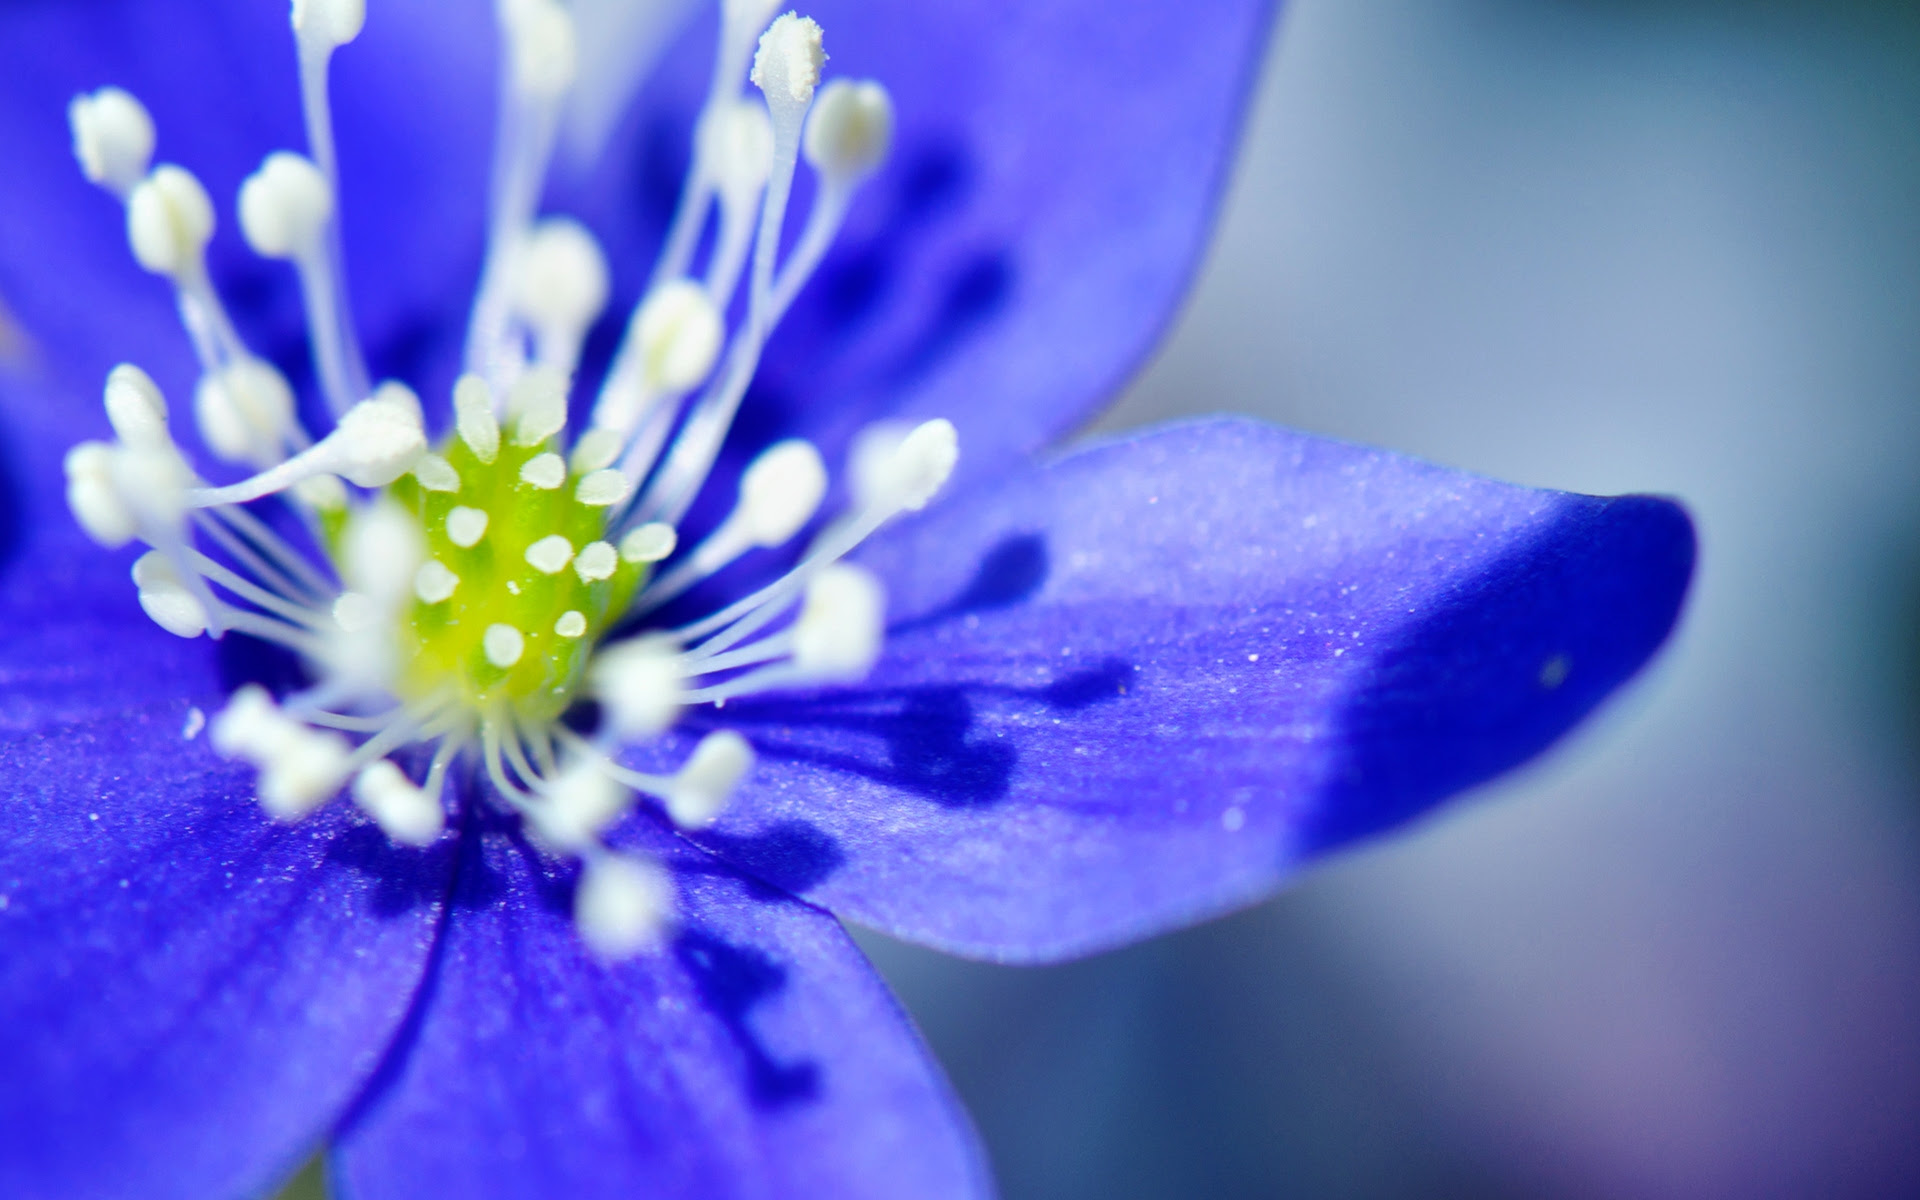 Blue Flowers Images Free Top Collection Of Different Types Of